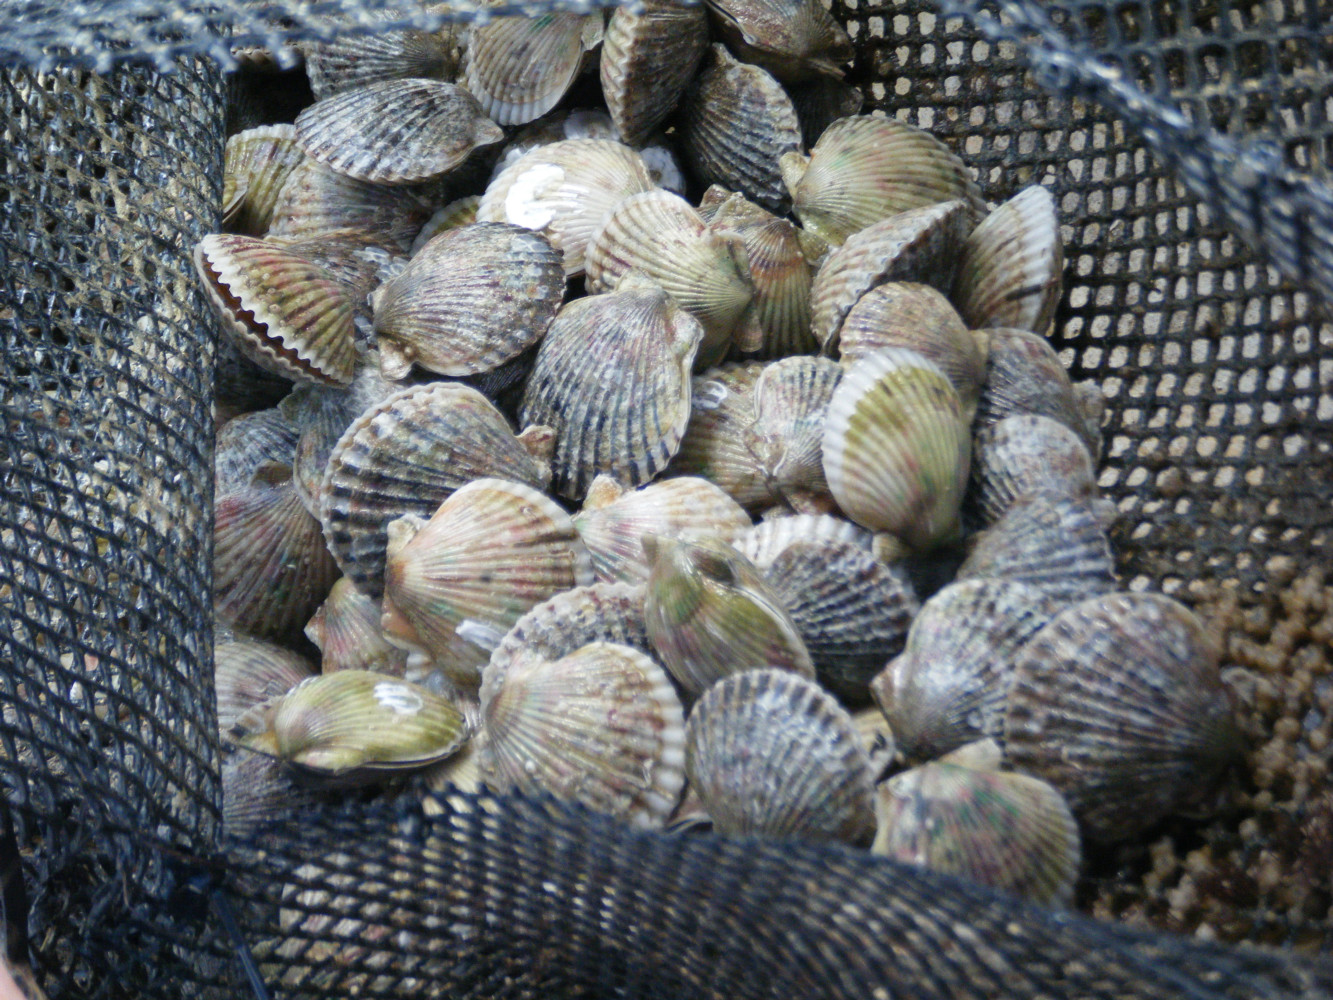 """""""THE COMMERCIALIZATION OF BAY SCALLOPS IN FLORIDA""""  A BAY SHELLFISH PROJECT FUNDED THROUGH ARC  THE PROJECT ANSWERED NECESSARY QUESTIONS TO MOVE THE FLORIDA BAY SCALLOP FROM POTENTIAL TO POSSIBLE  (Argopecten irradians)"""